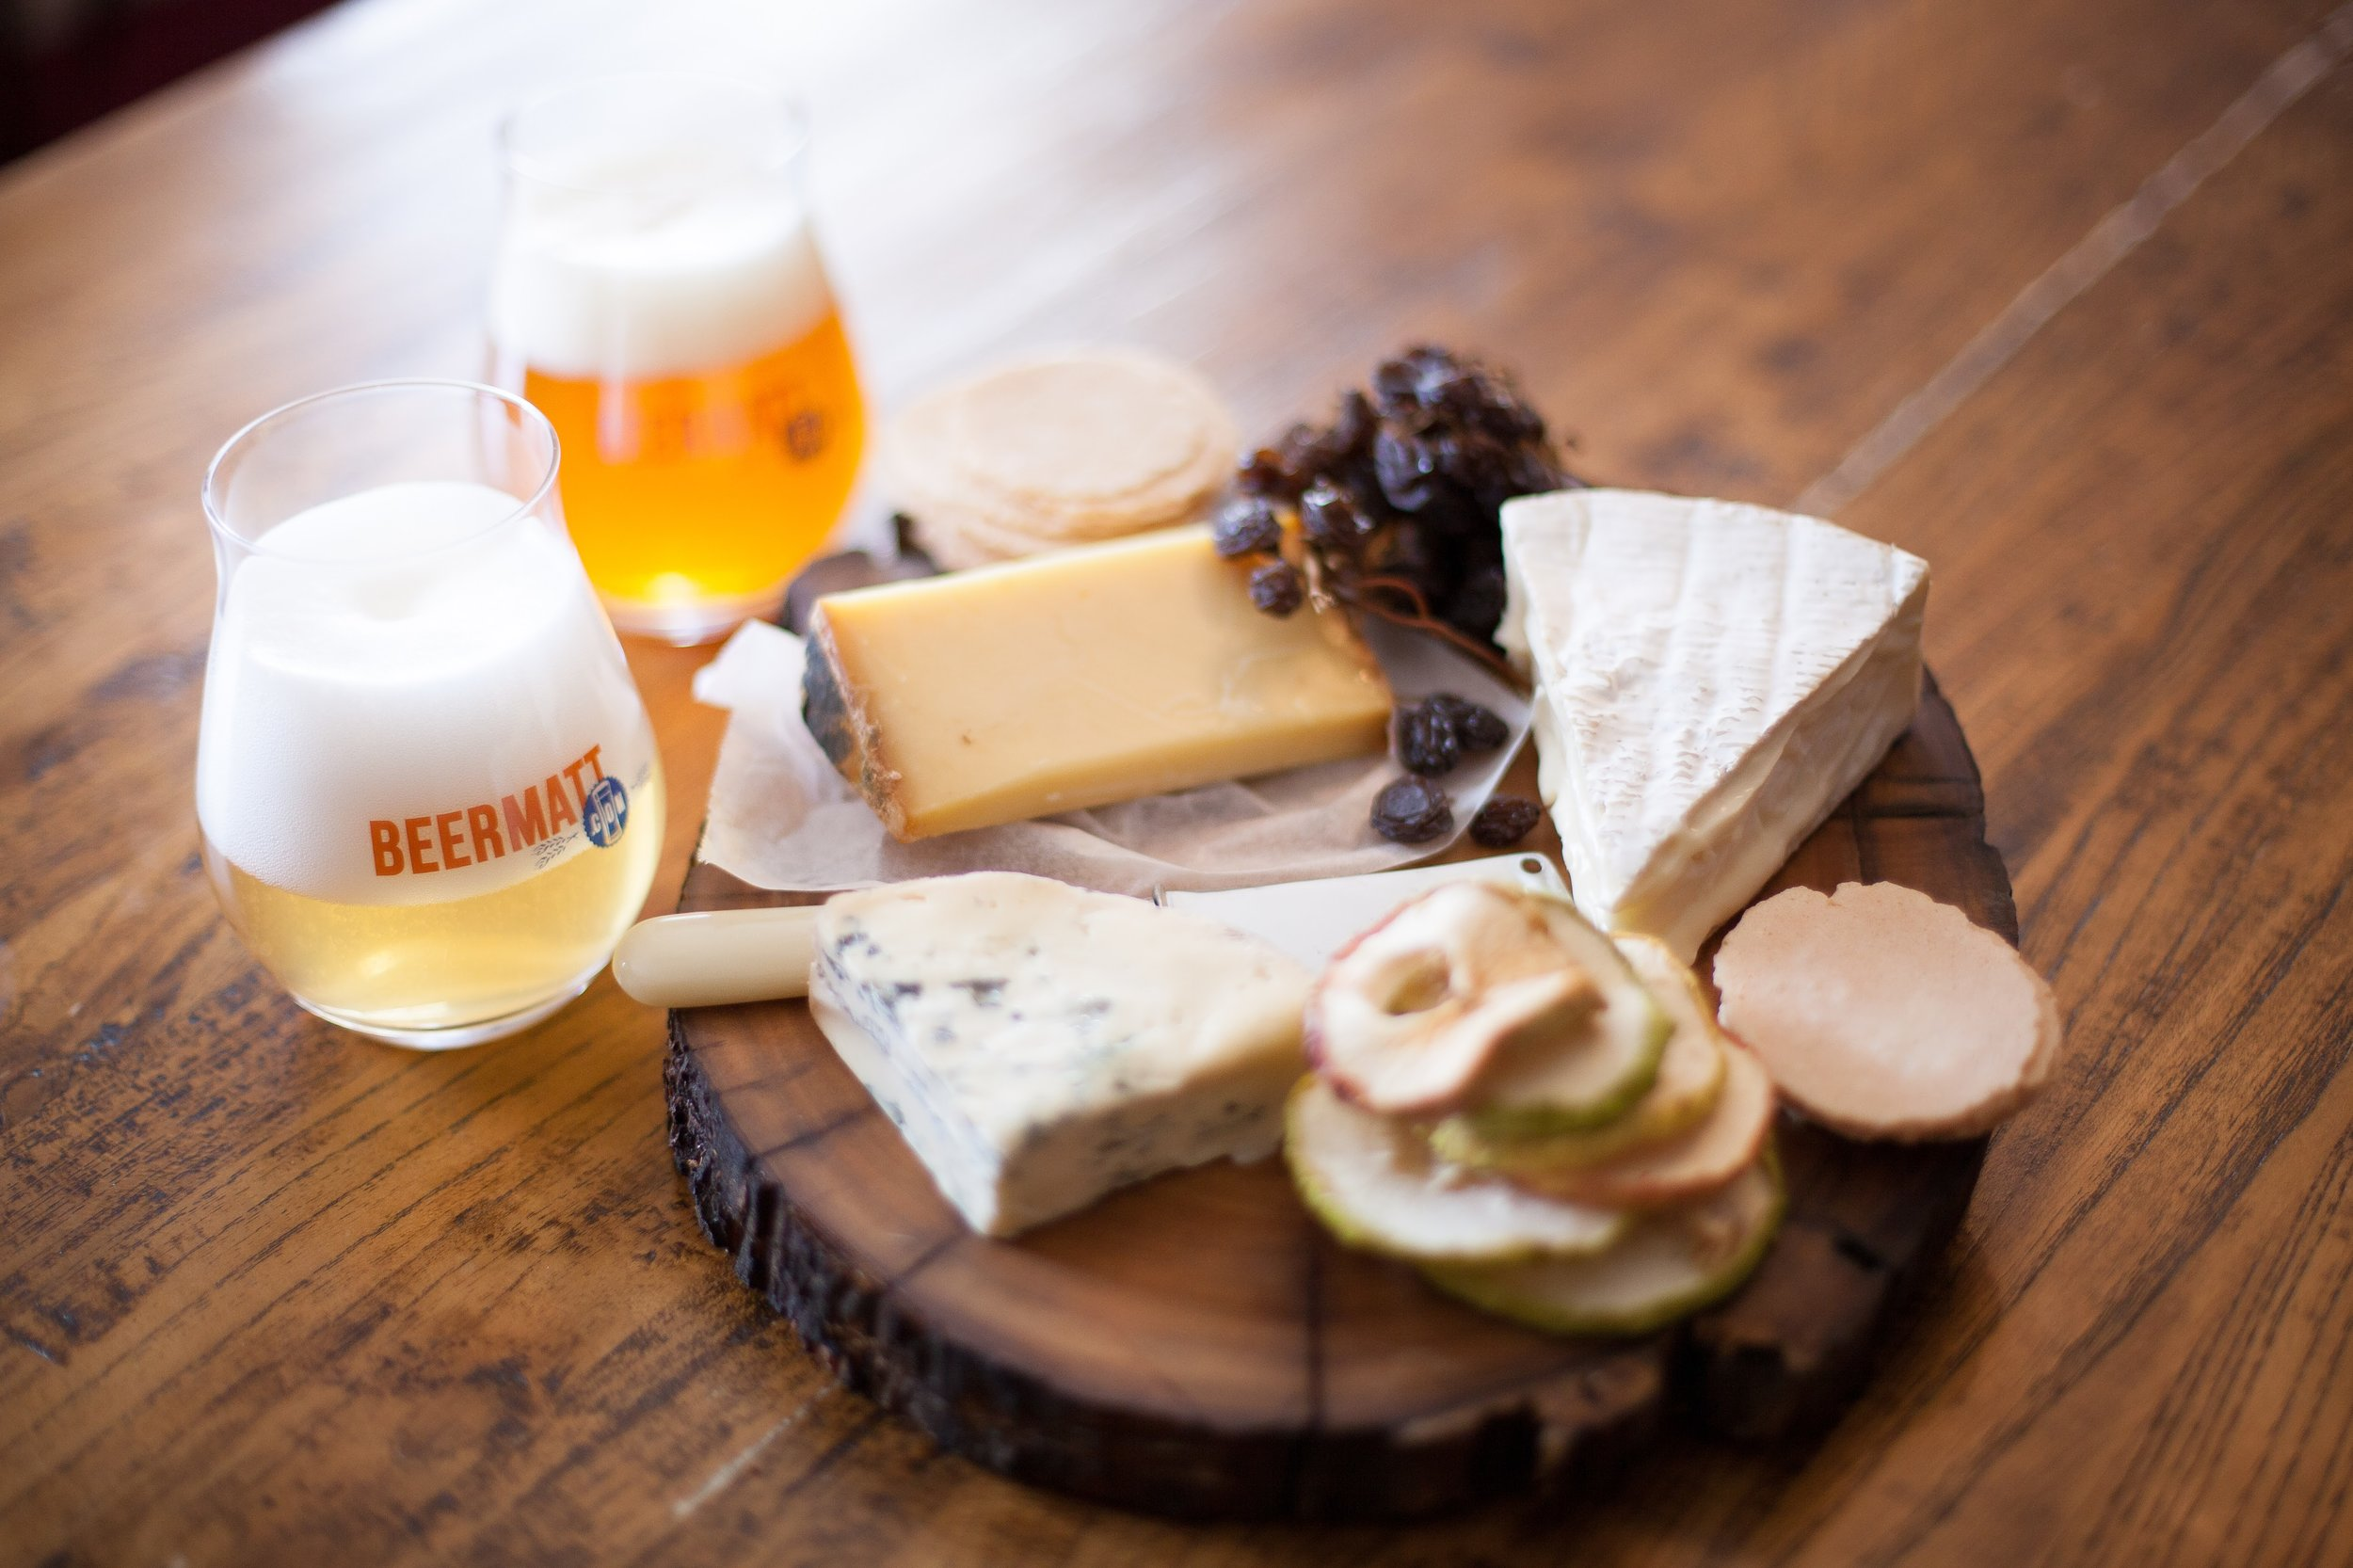 Beer & Cheese - Beer's ability to pair with cheese surprises many and leaves a lasting impression on corporate guests. Matt can present a beer and cheese masterclass just about anywhere.